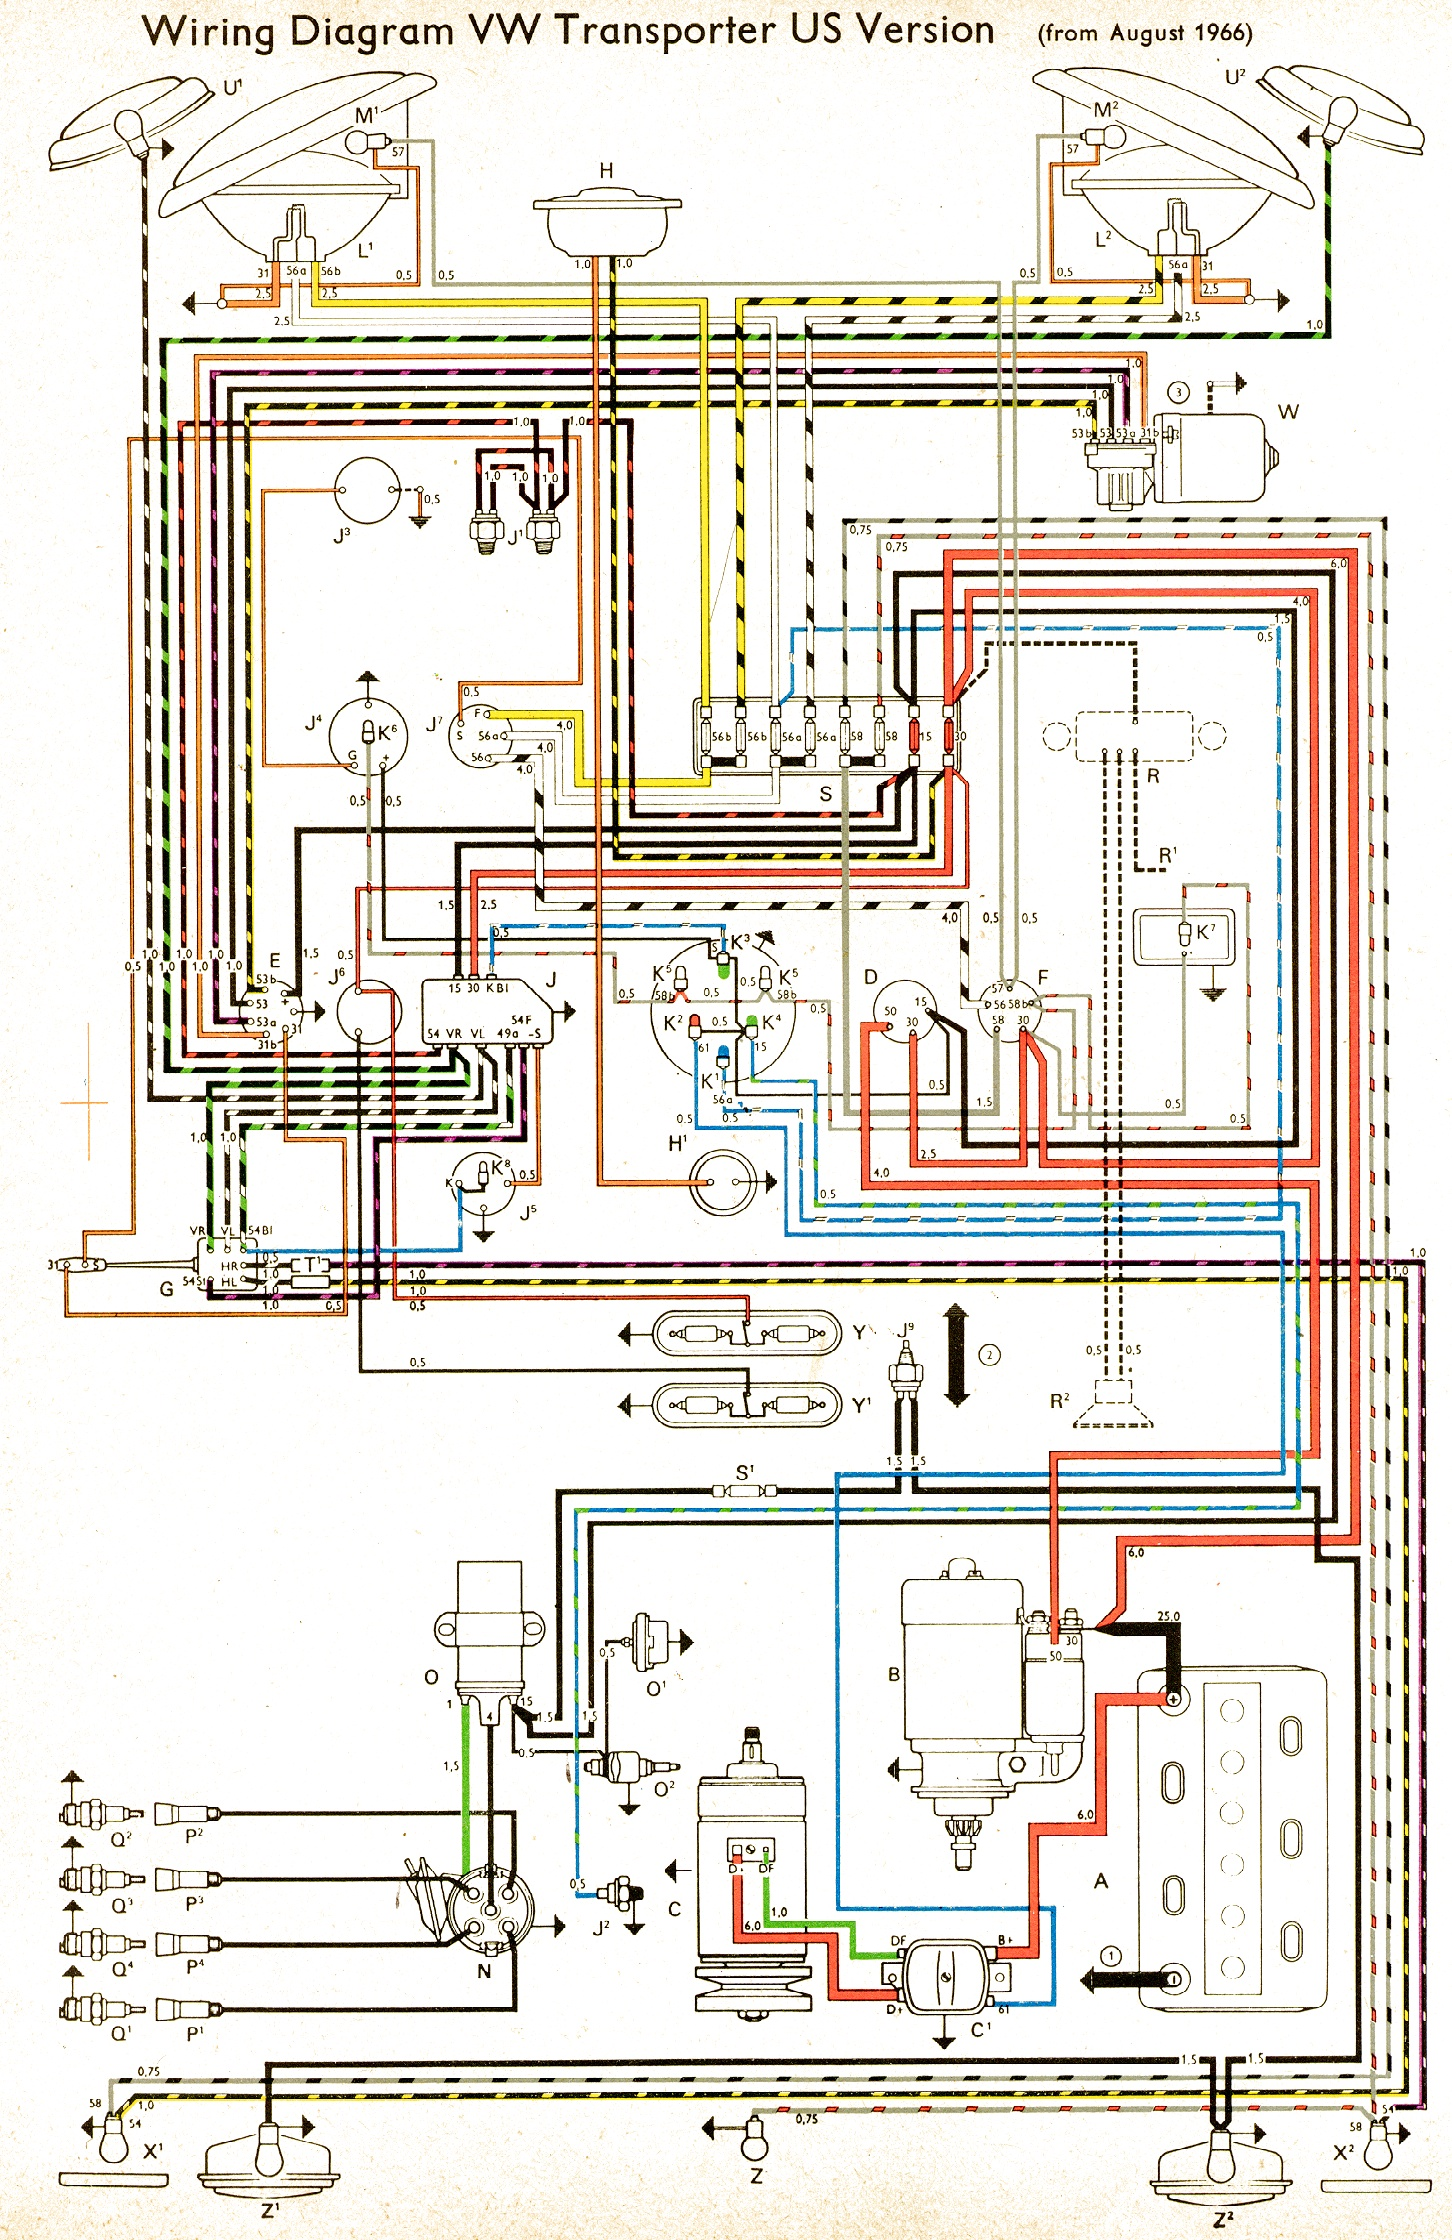 hight resolution of vintagebus com vw bus and other wiring diagrams com vw bus and other